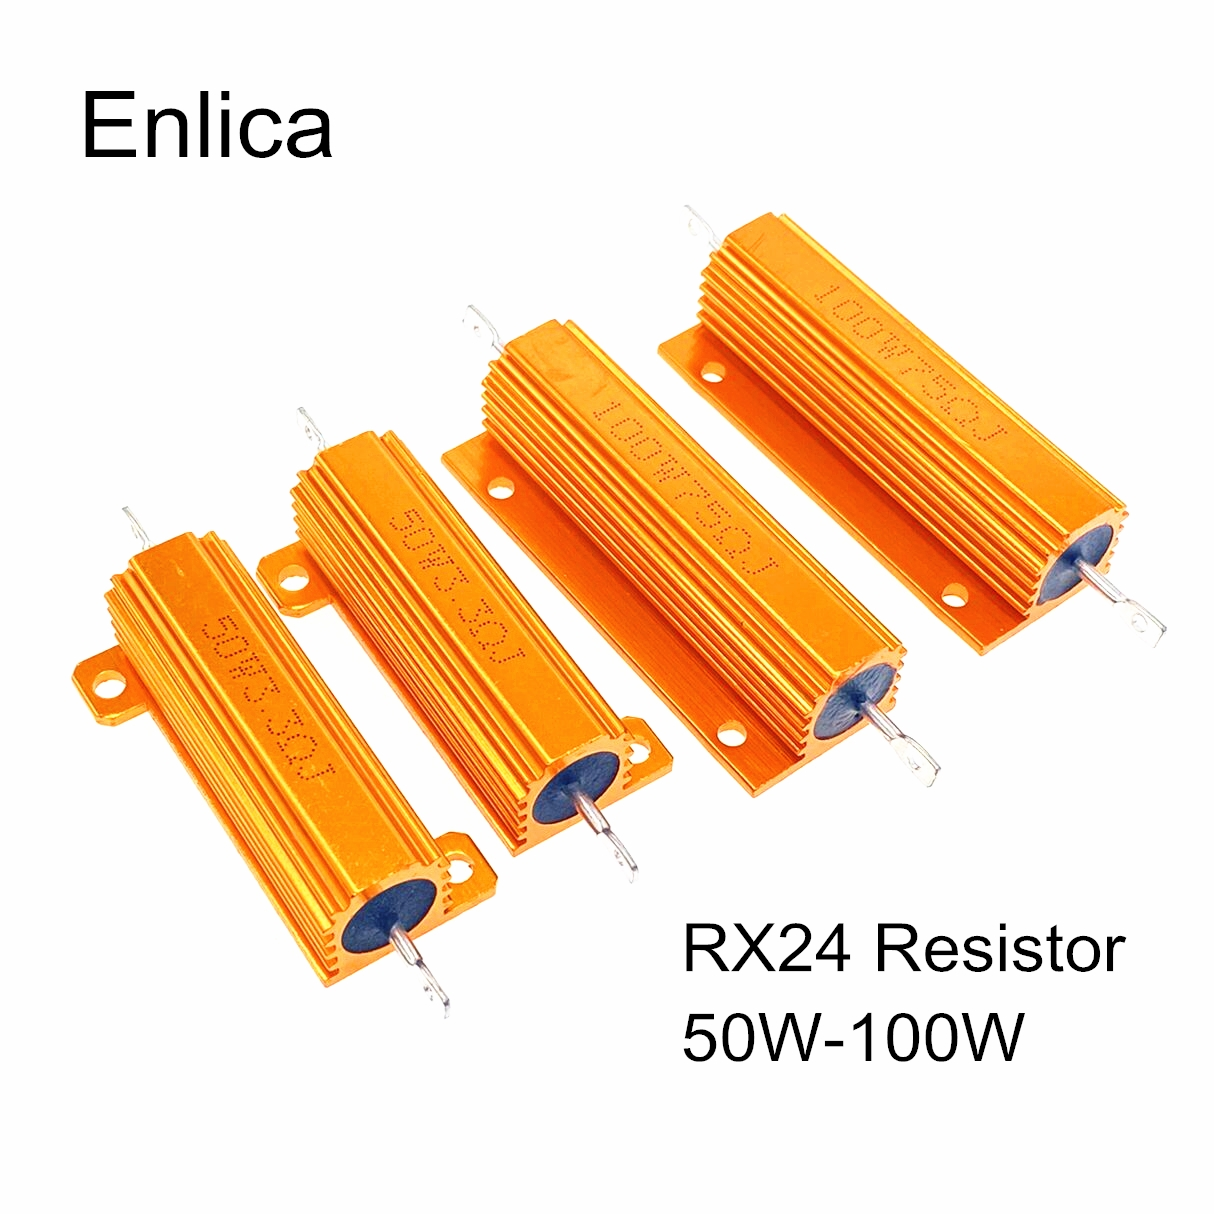 RX24 50W 100W Alumínio Shell Power Metal Caso Wirewound Resistor 0.01 ~ 100K 0.05 0.1 0.5 1 2 4 6 8 10 20 100 150 200 300 ohm 50